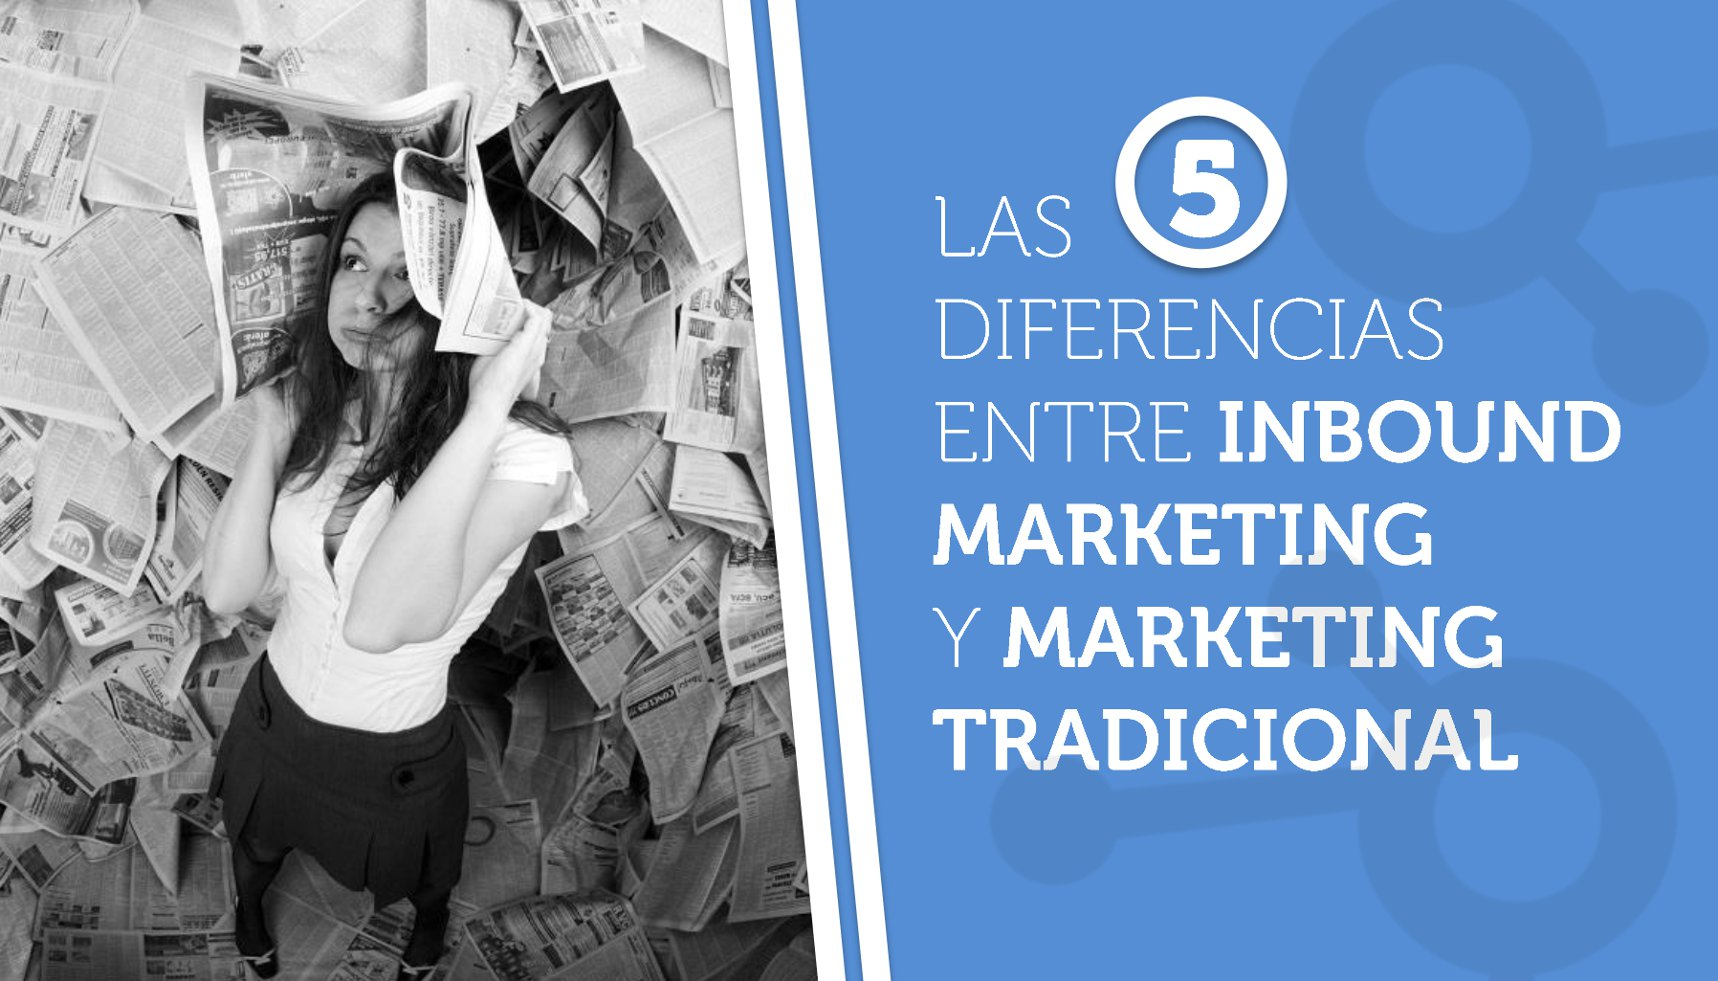 Las 5 diferencias entre inbound marketing y marketing tradicional